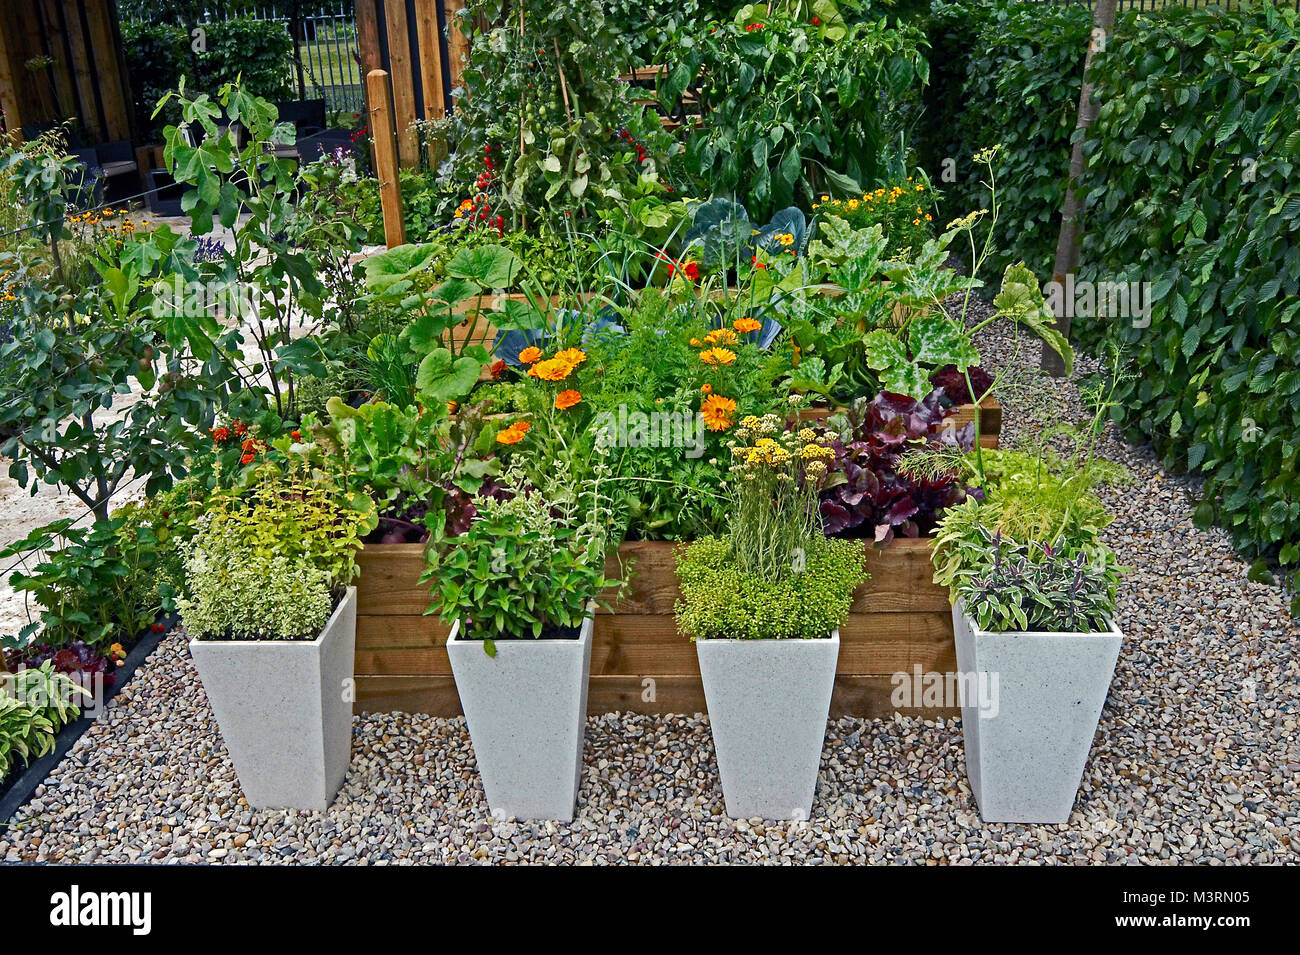 A Decorative Herb And Vegetable Garden With Planted Containers